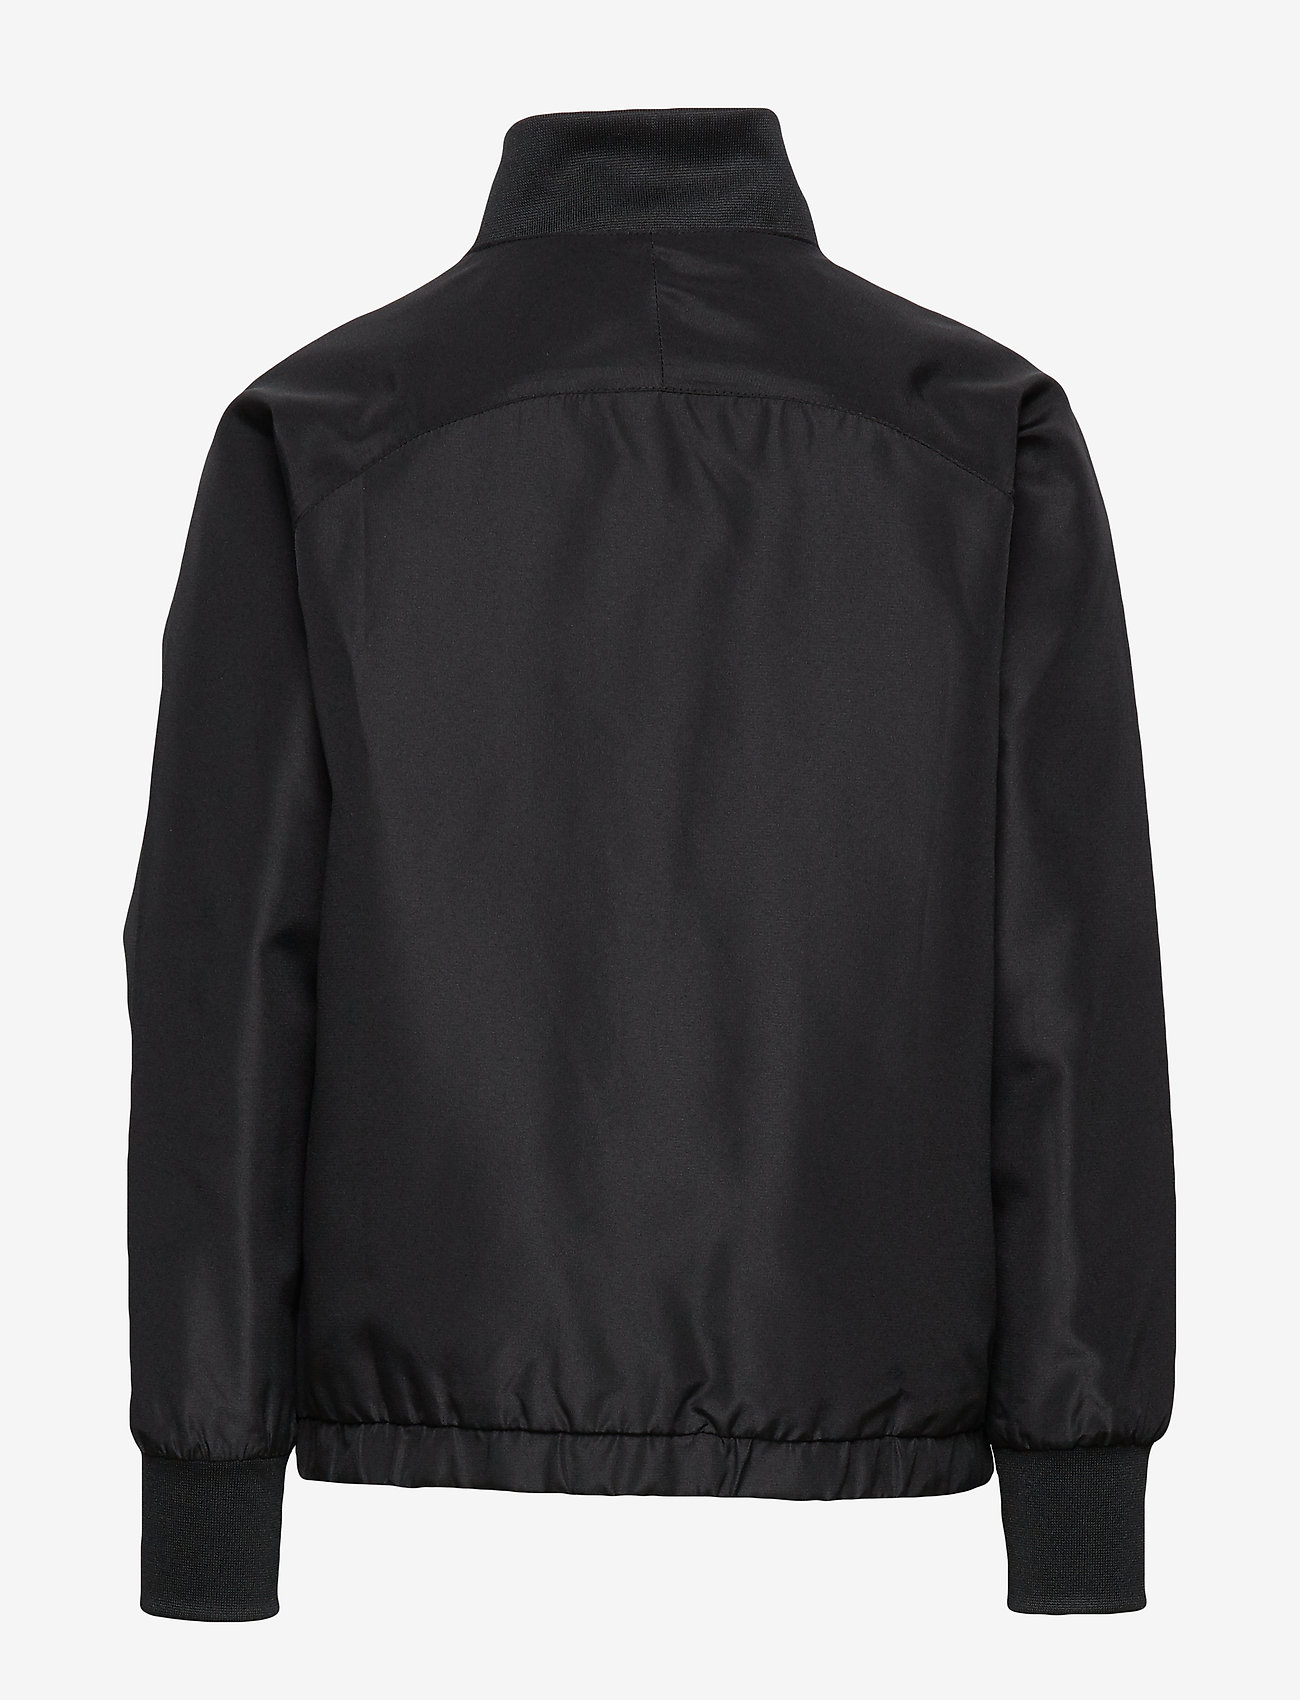 Hummel - hmlTRUDE ZIP JACKET - sweats - black